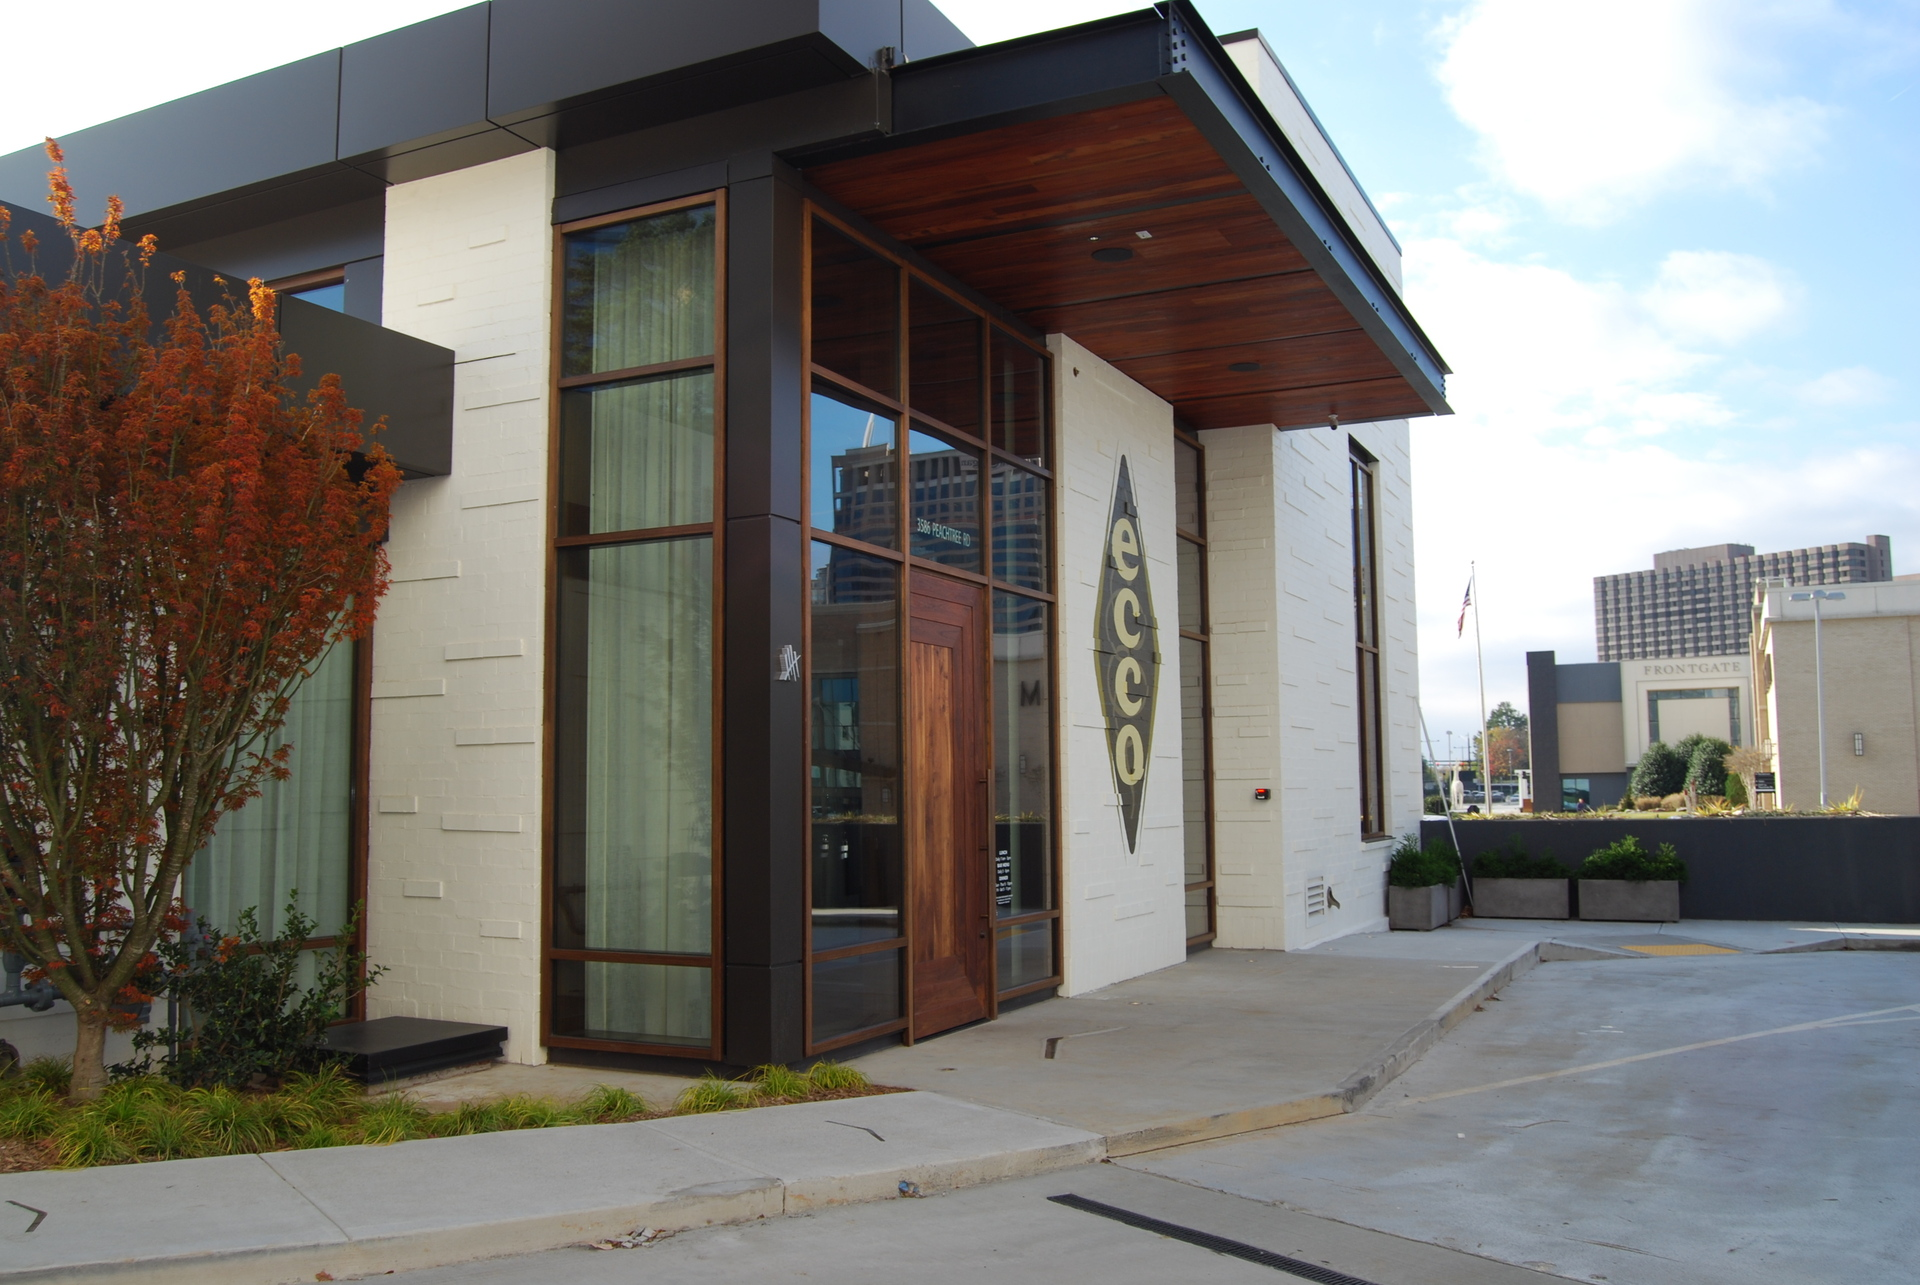 Featured here at the Ecco Restaurant are Lamboo® commercial doors & windows to bring uniformity and warmth to its modern environment.